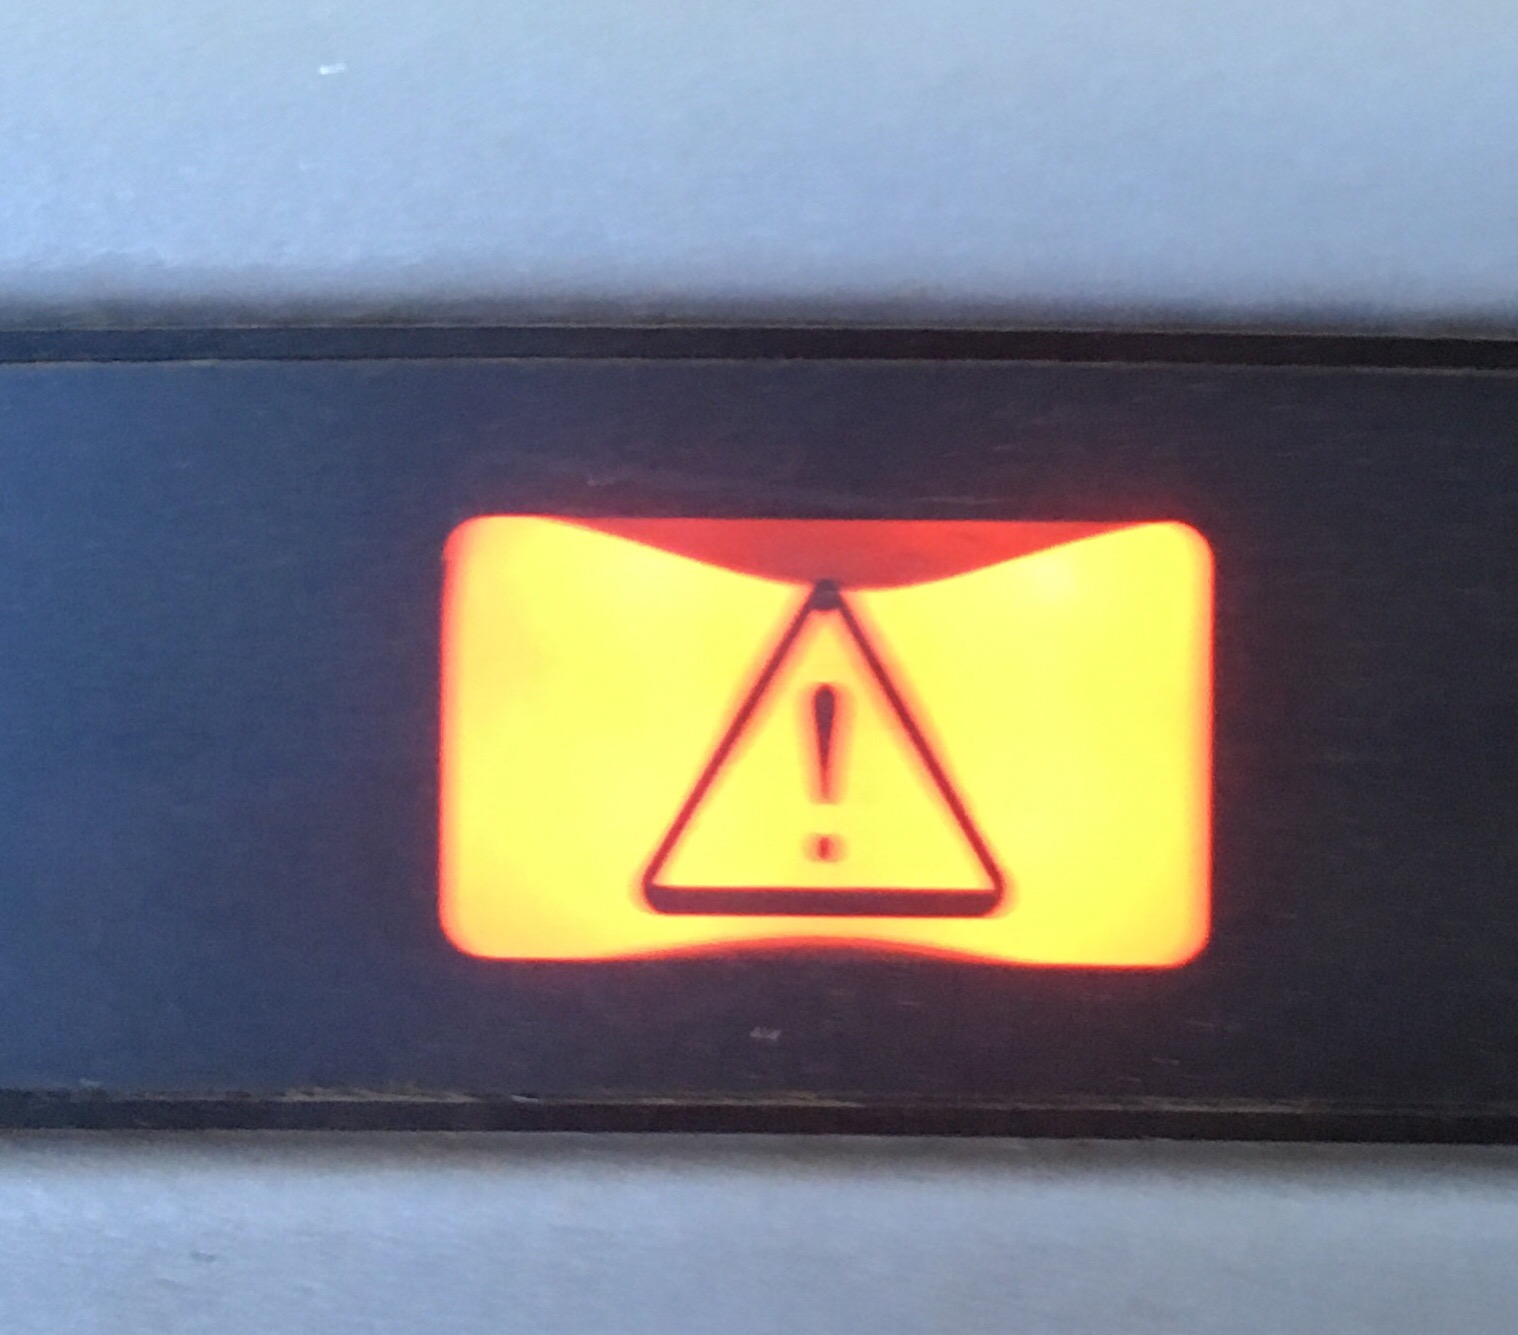 Warning Light - how to diagnose? | The Farming Forum